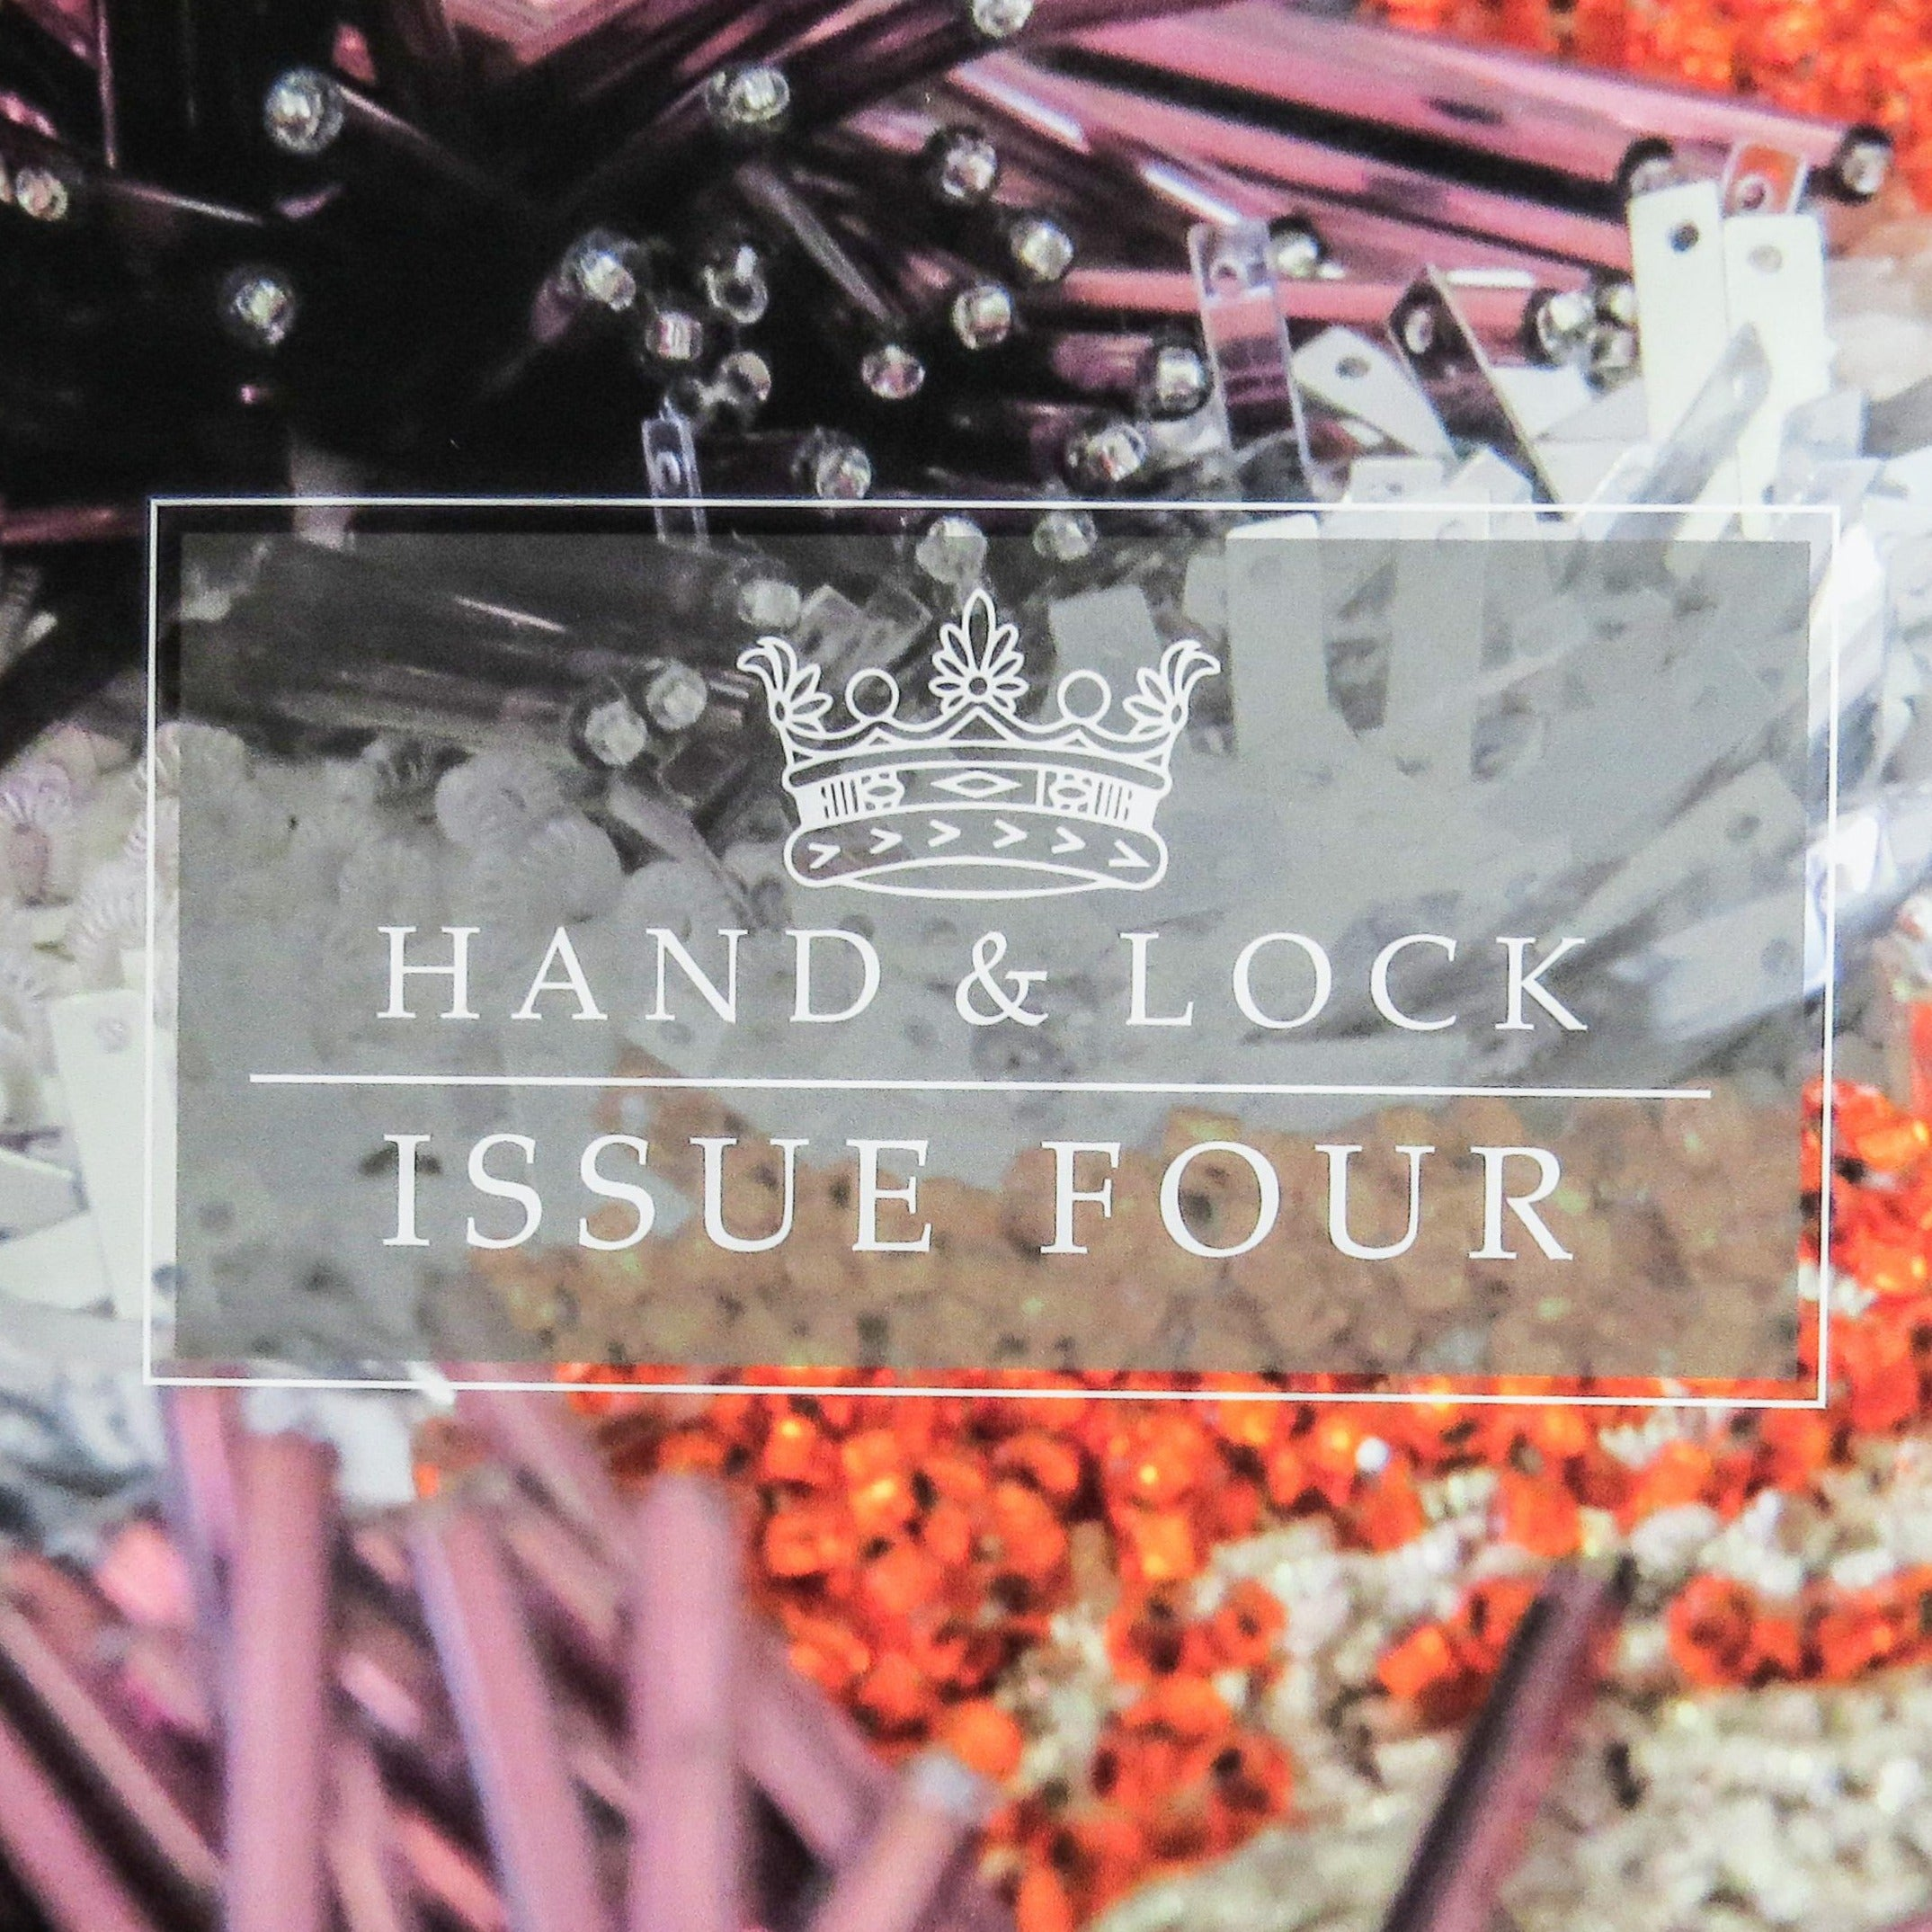 Hand & Lock: Issue Four (3963049803848)